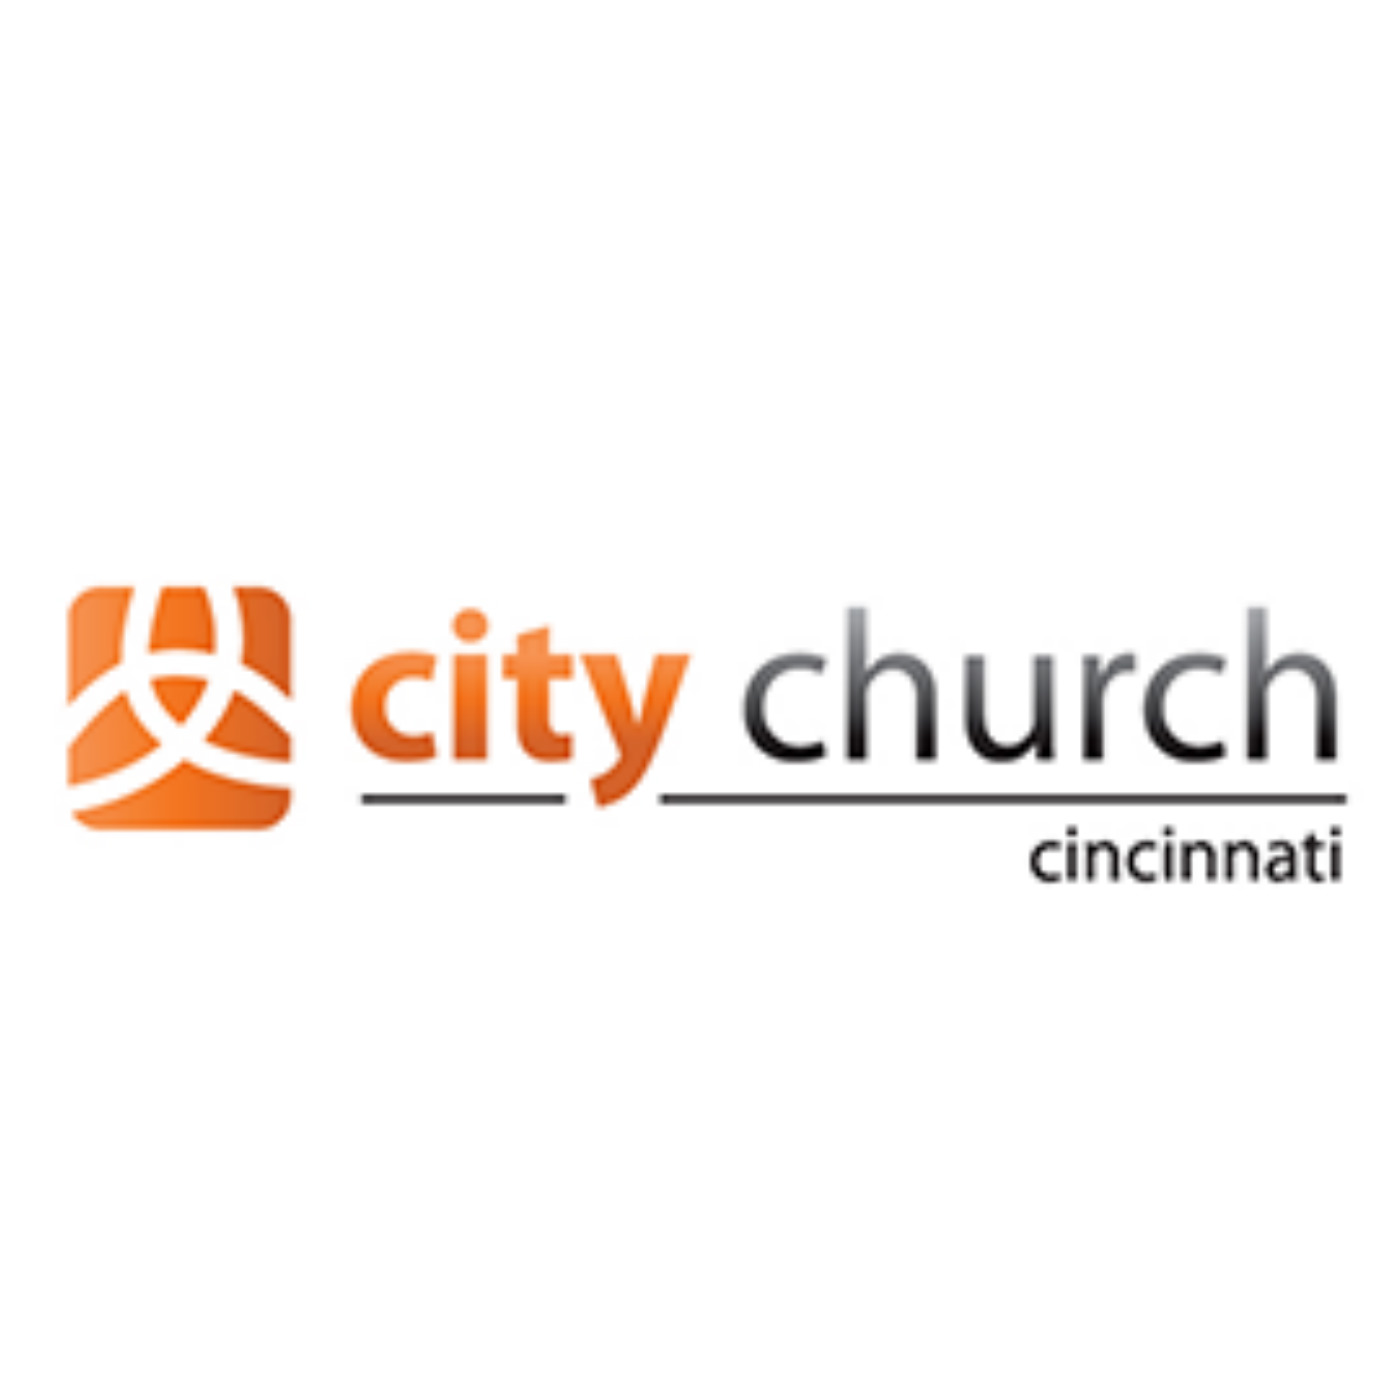 City Church Cincinnati